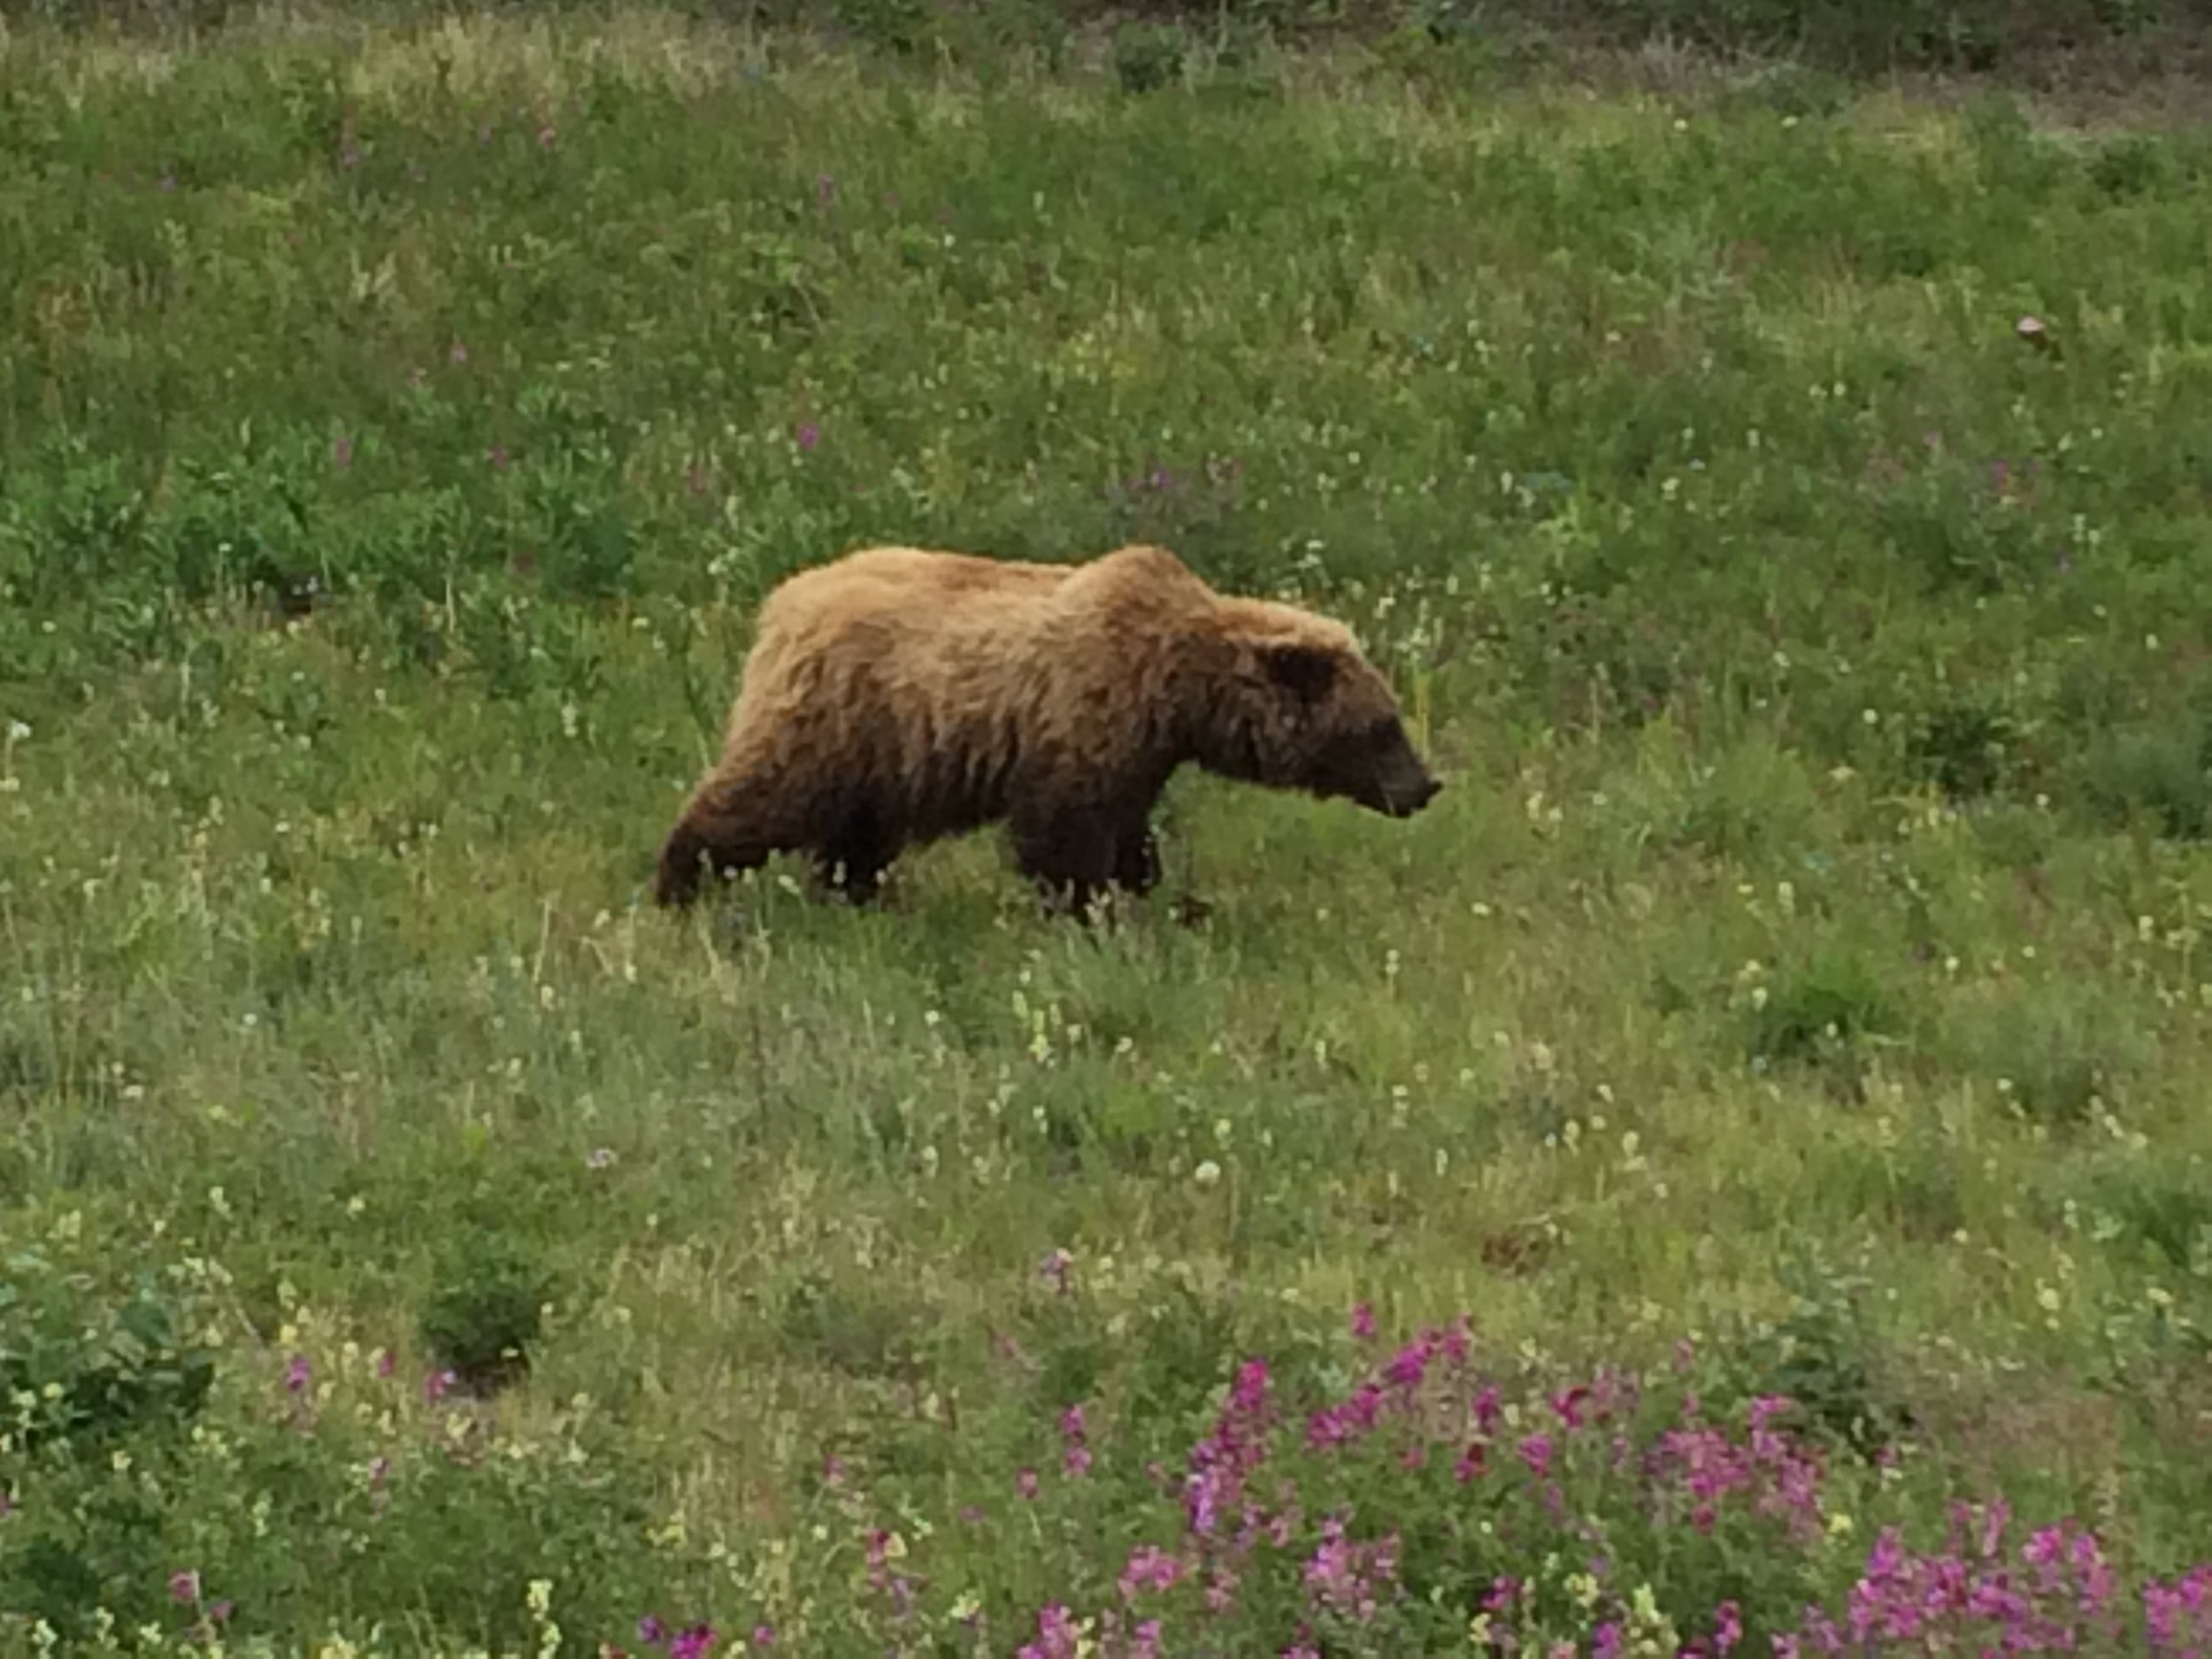 The best grizzly pic I've taken so far. I took it out of my car window so don't worry, I wasn't in danger. I slowly crept up for the pic and then faded away... I didn't disturb the bear and it never even acknowledged I was there.